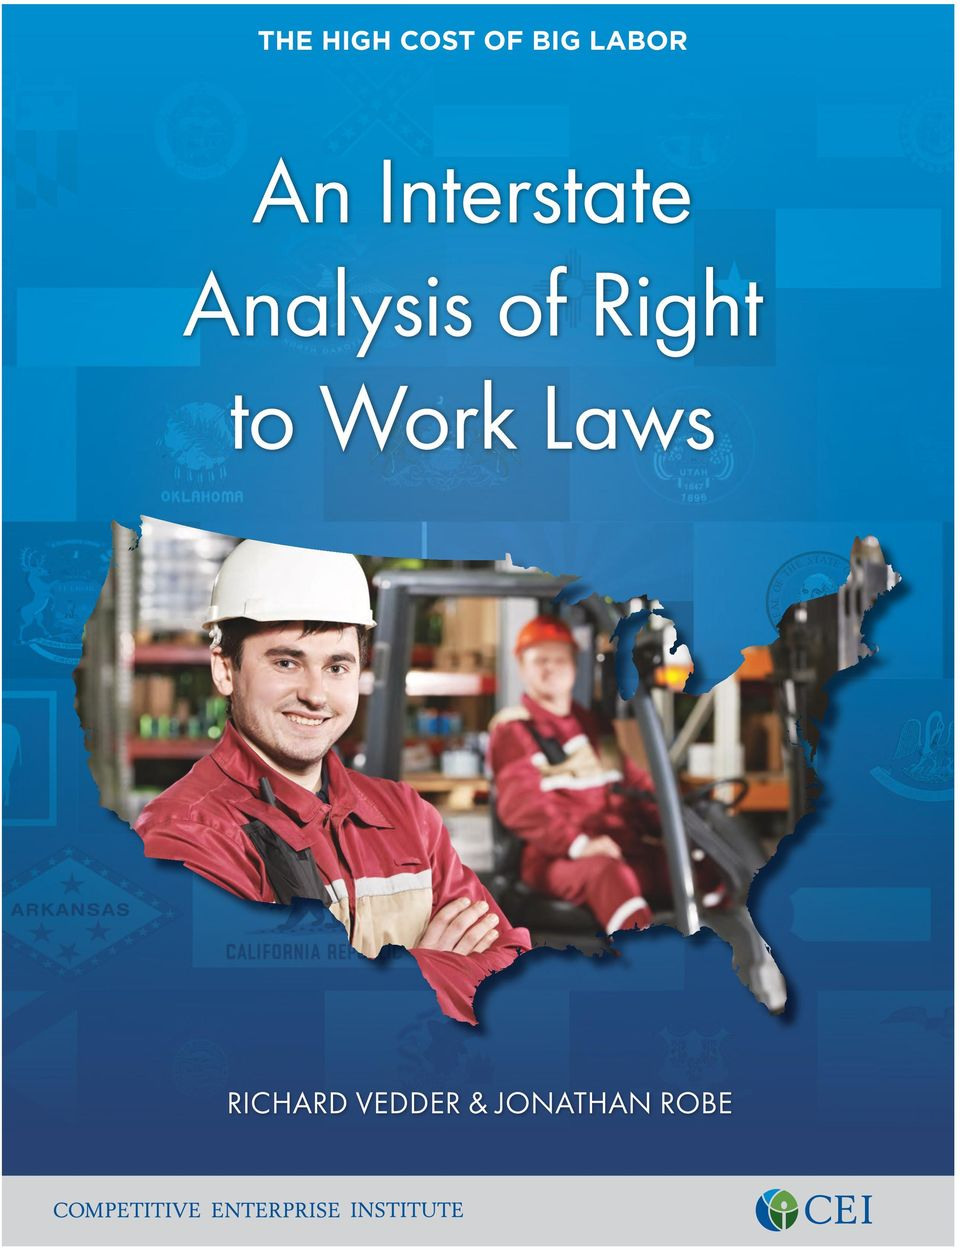 Analysis of Right to Work